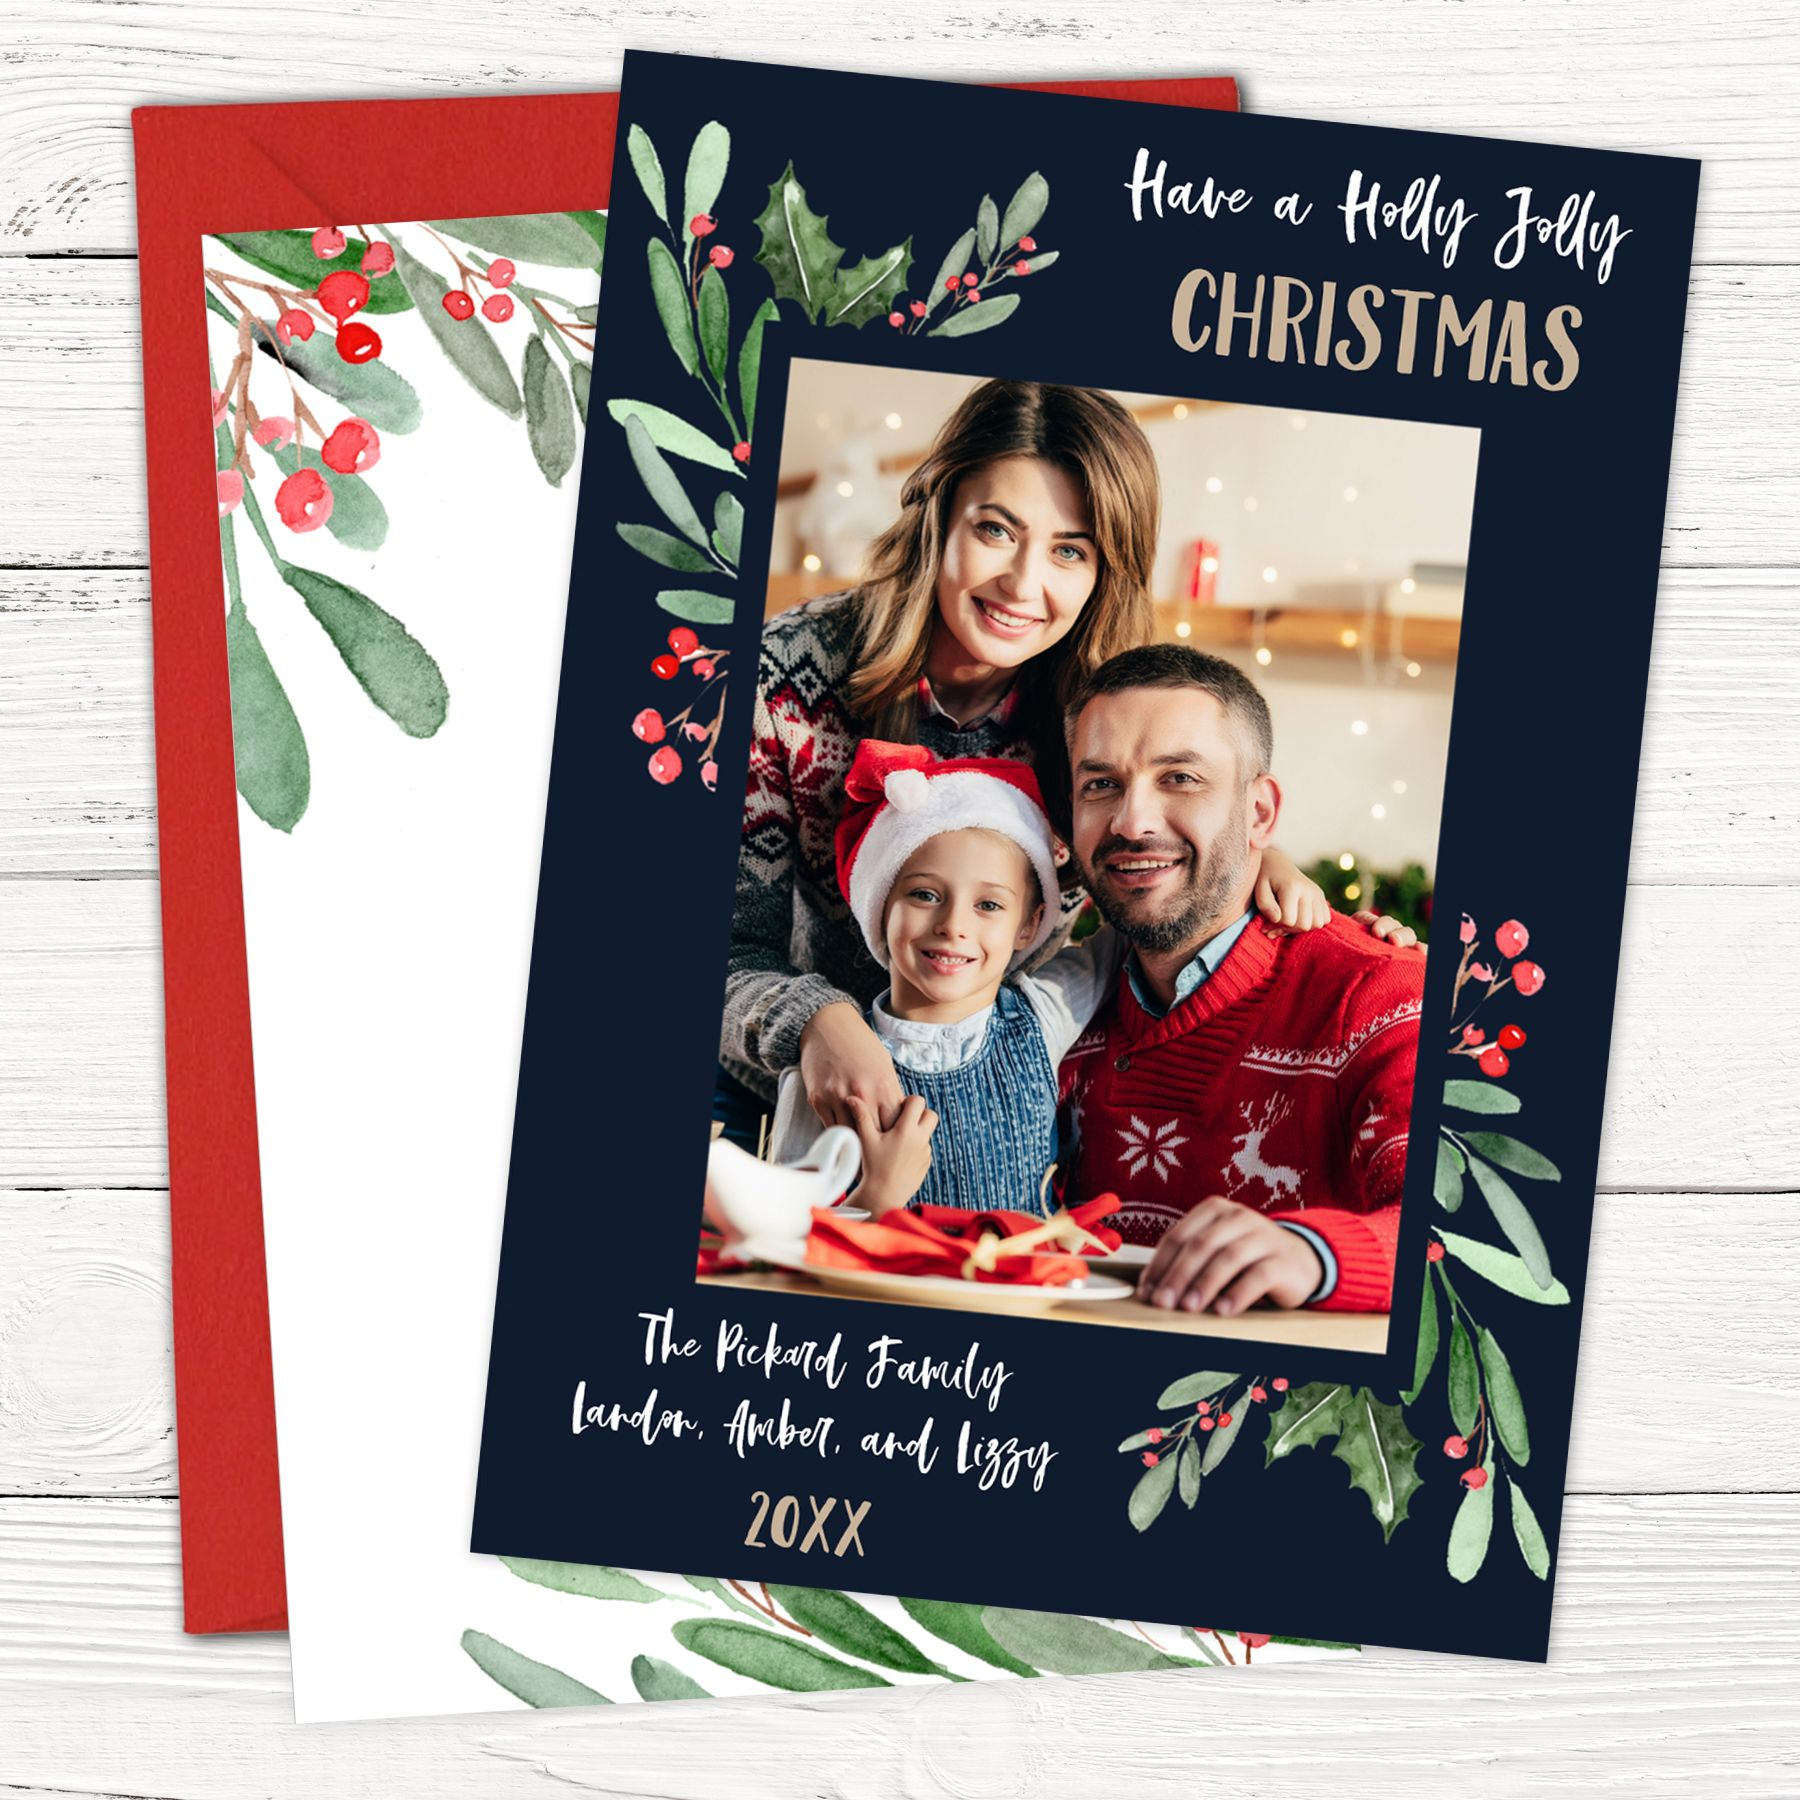 Personalized Family Christmas Card Funny Photo Christmas Card Etsy Family Christmas Cards Christmas Photo Cards Photo Insert Christmas Cards